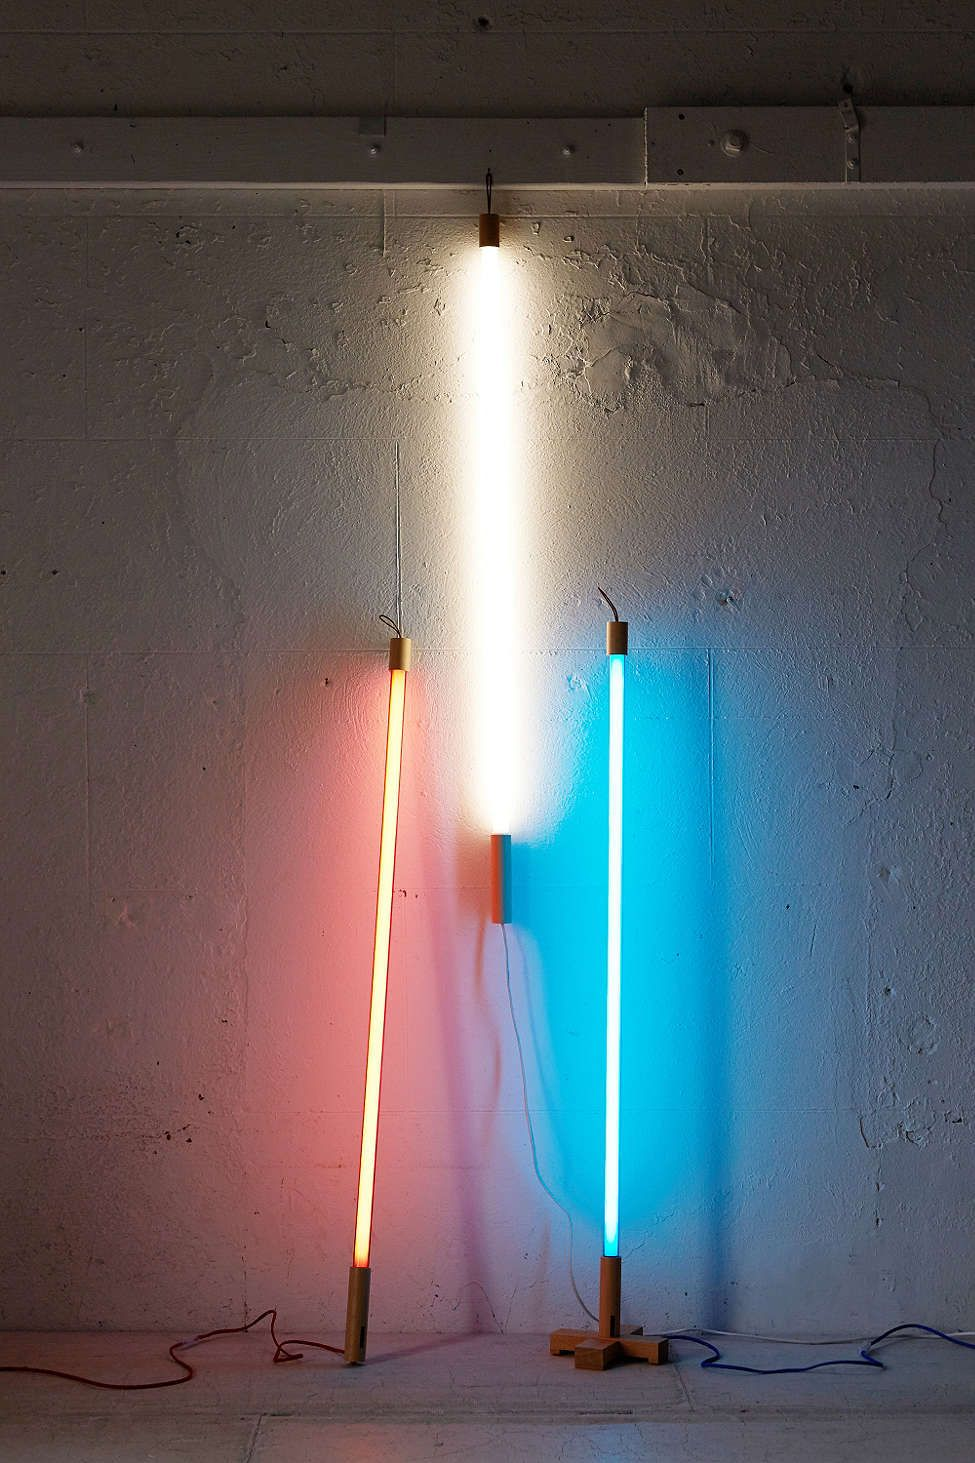 Neon Lamp Neon Tube Light Home Furnishings Neon Tube Lights Neon Lamp